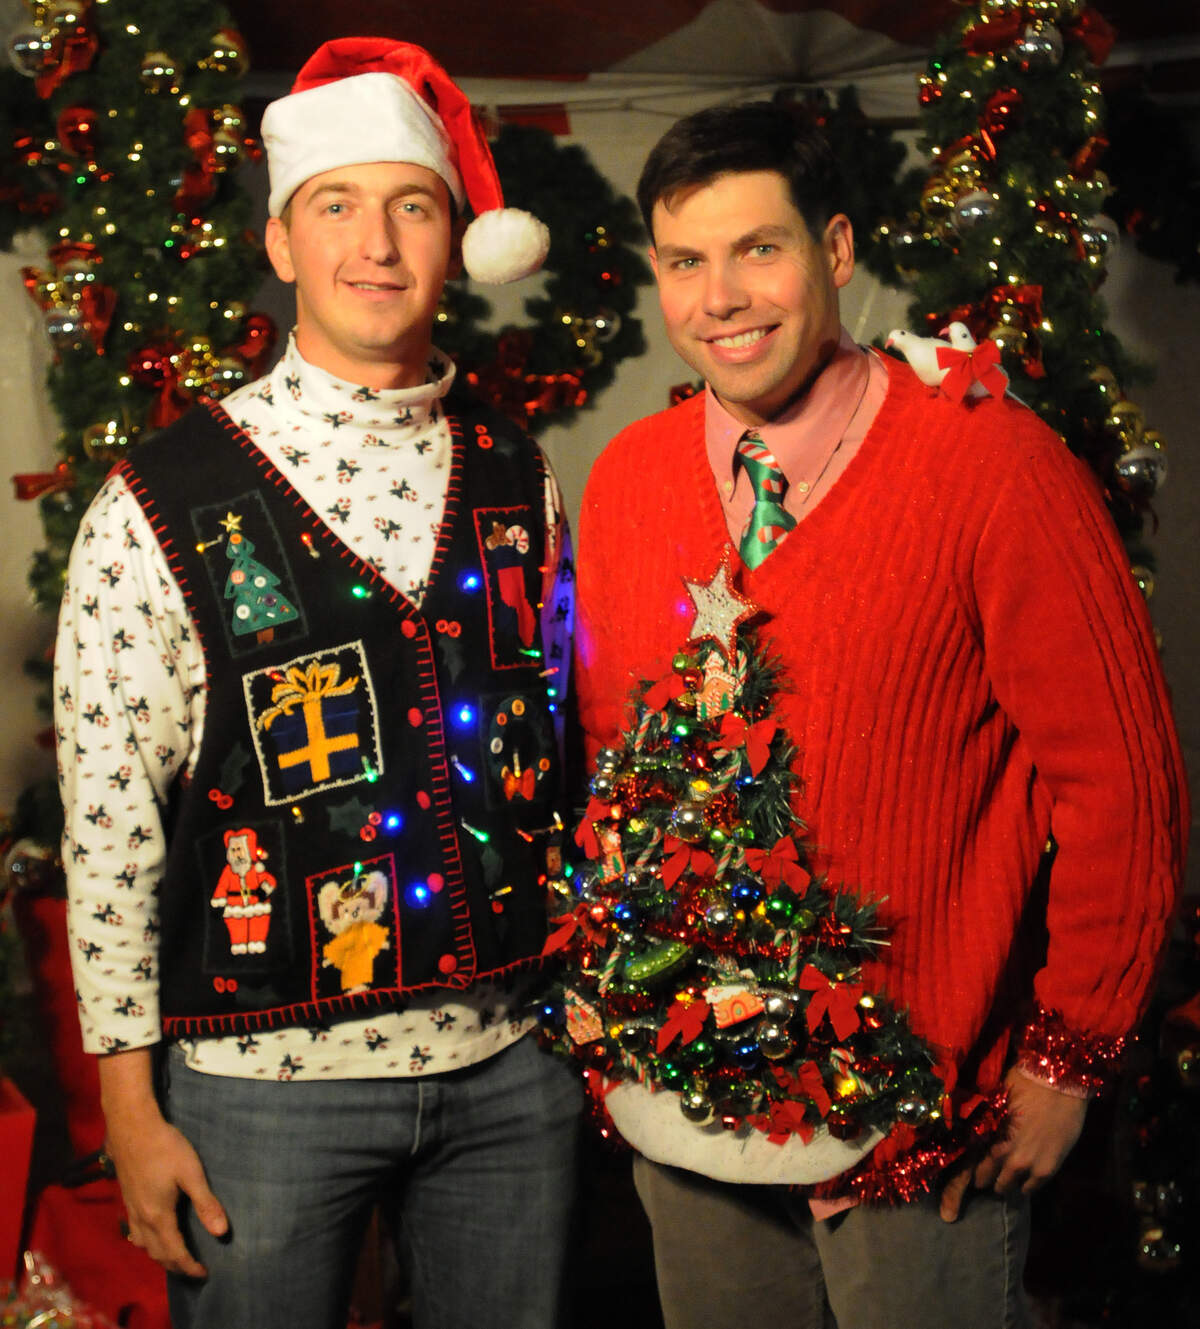 Image for National Ugly Christmas Sweater Day